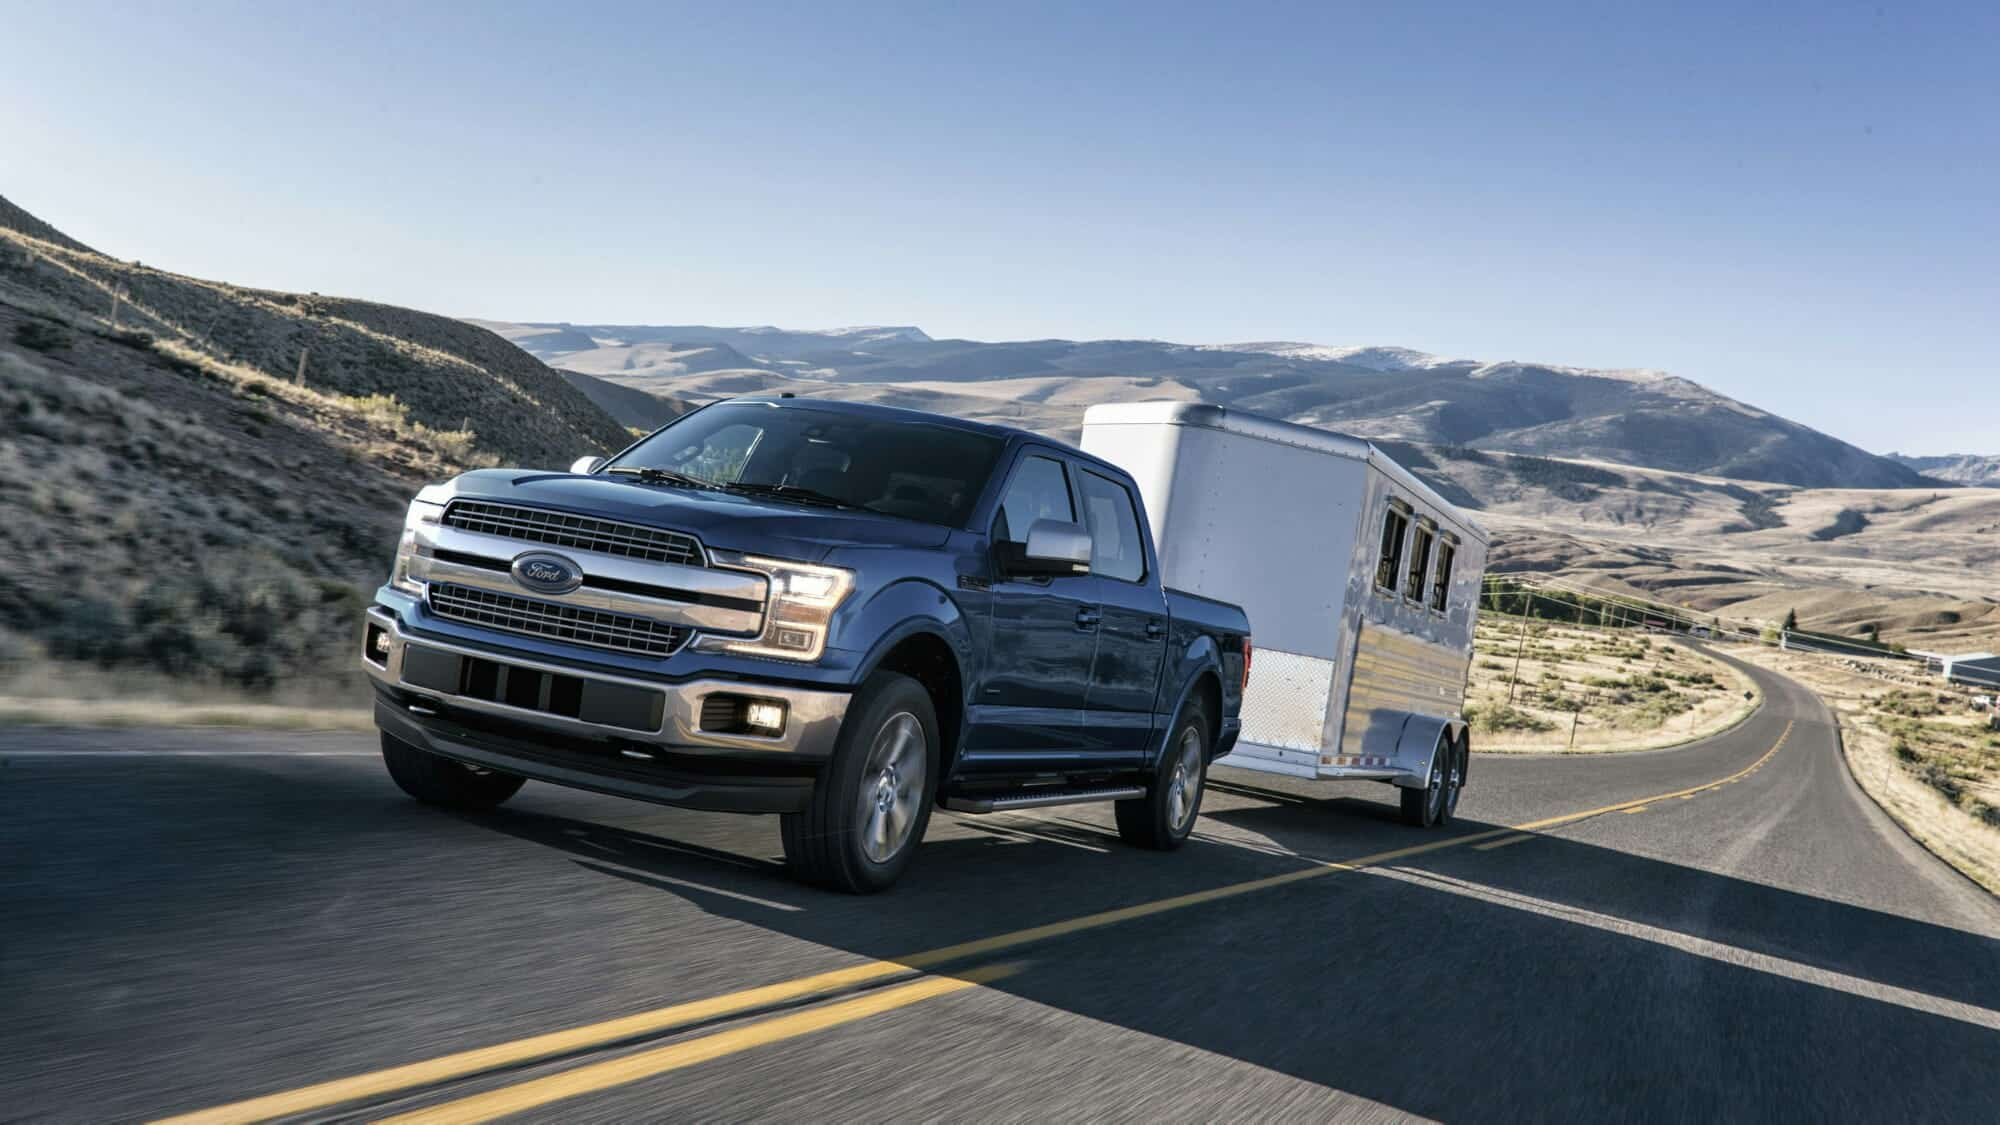 What Size Travel Trailer Can A F150 Pull?